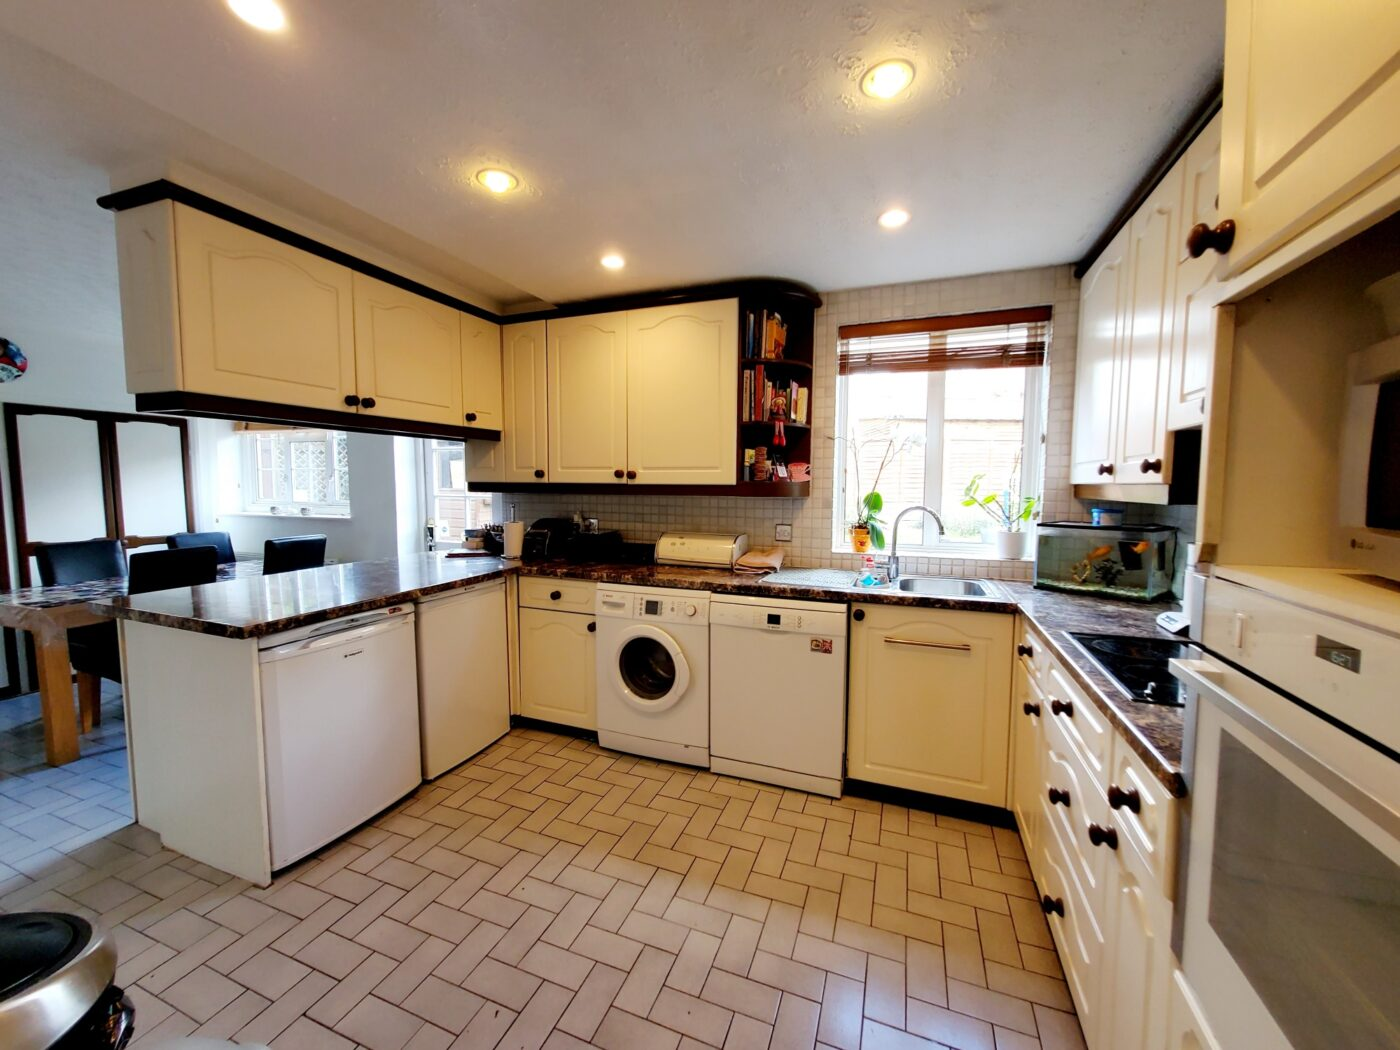 Fairview Way, Edgware, HA8 8JF